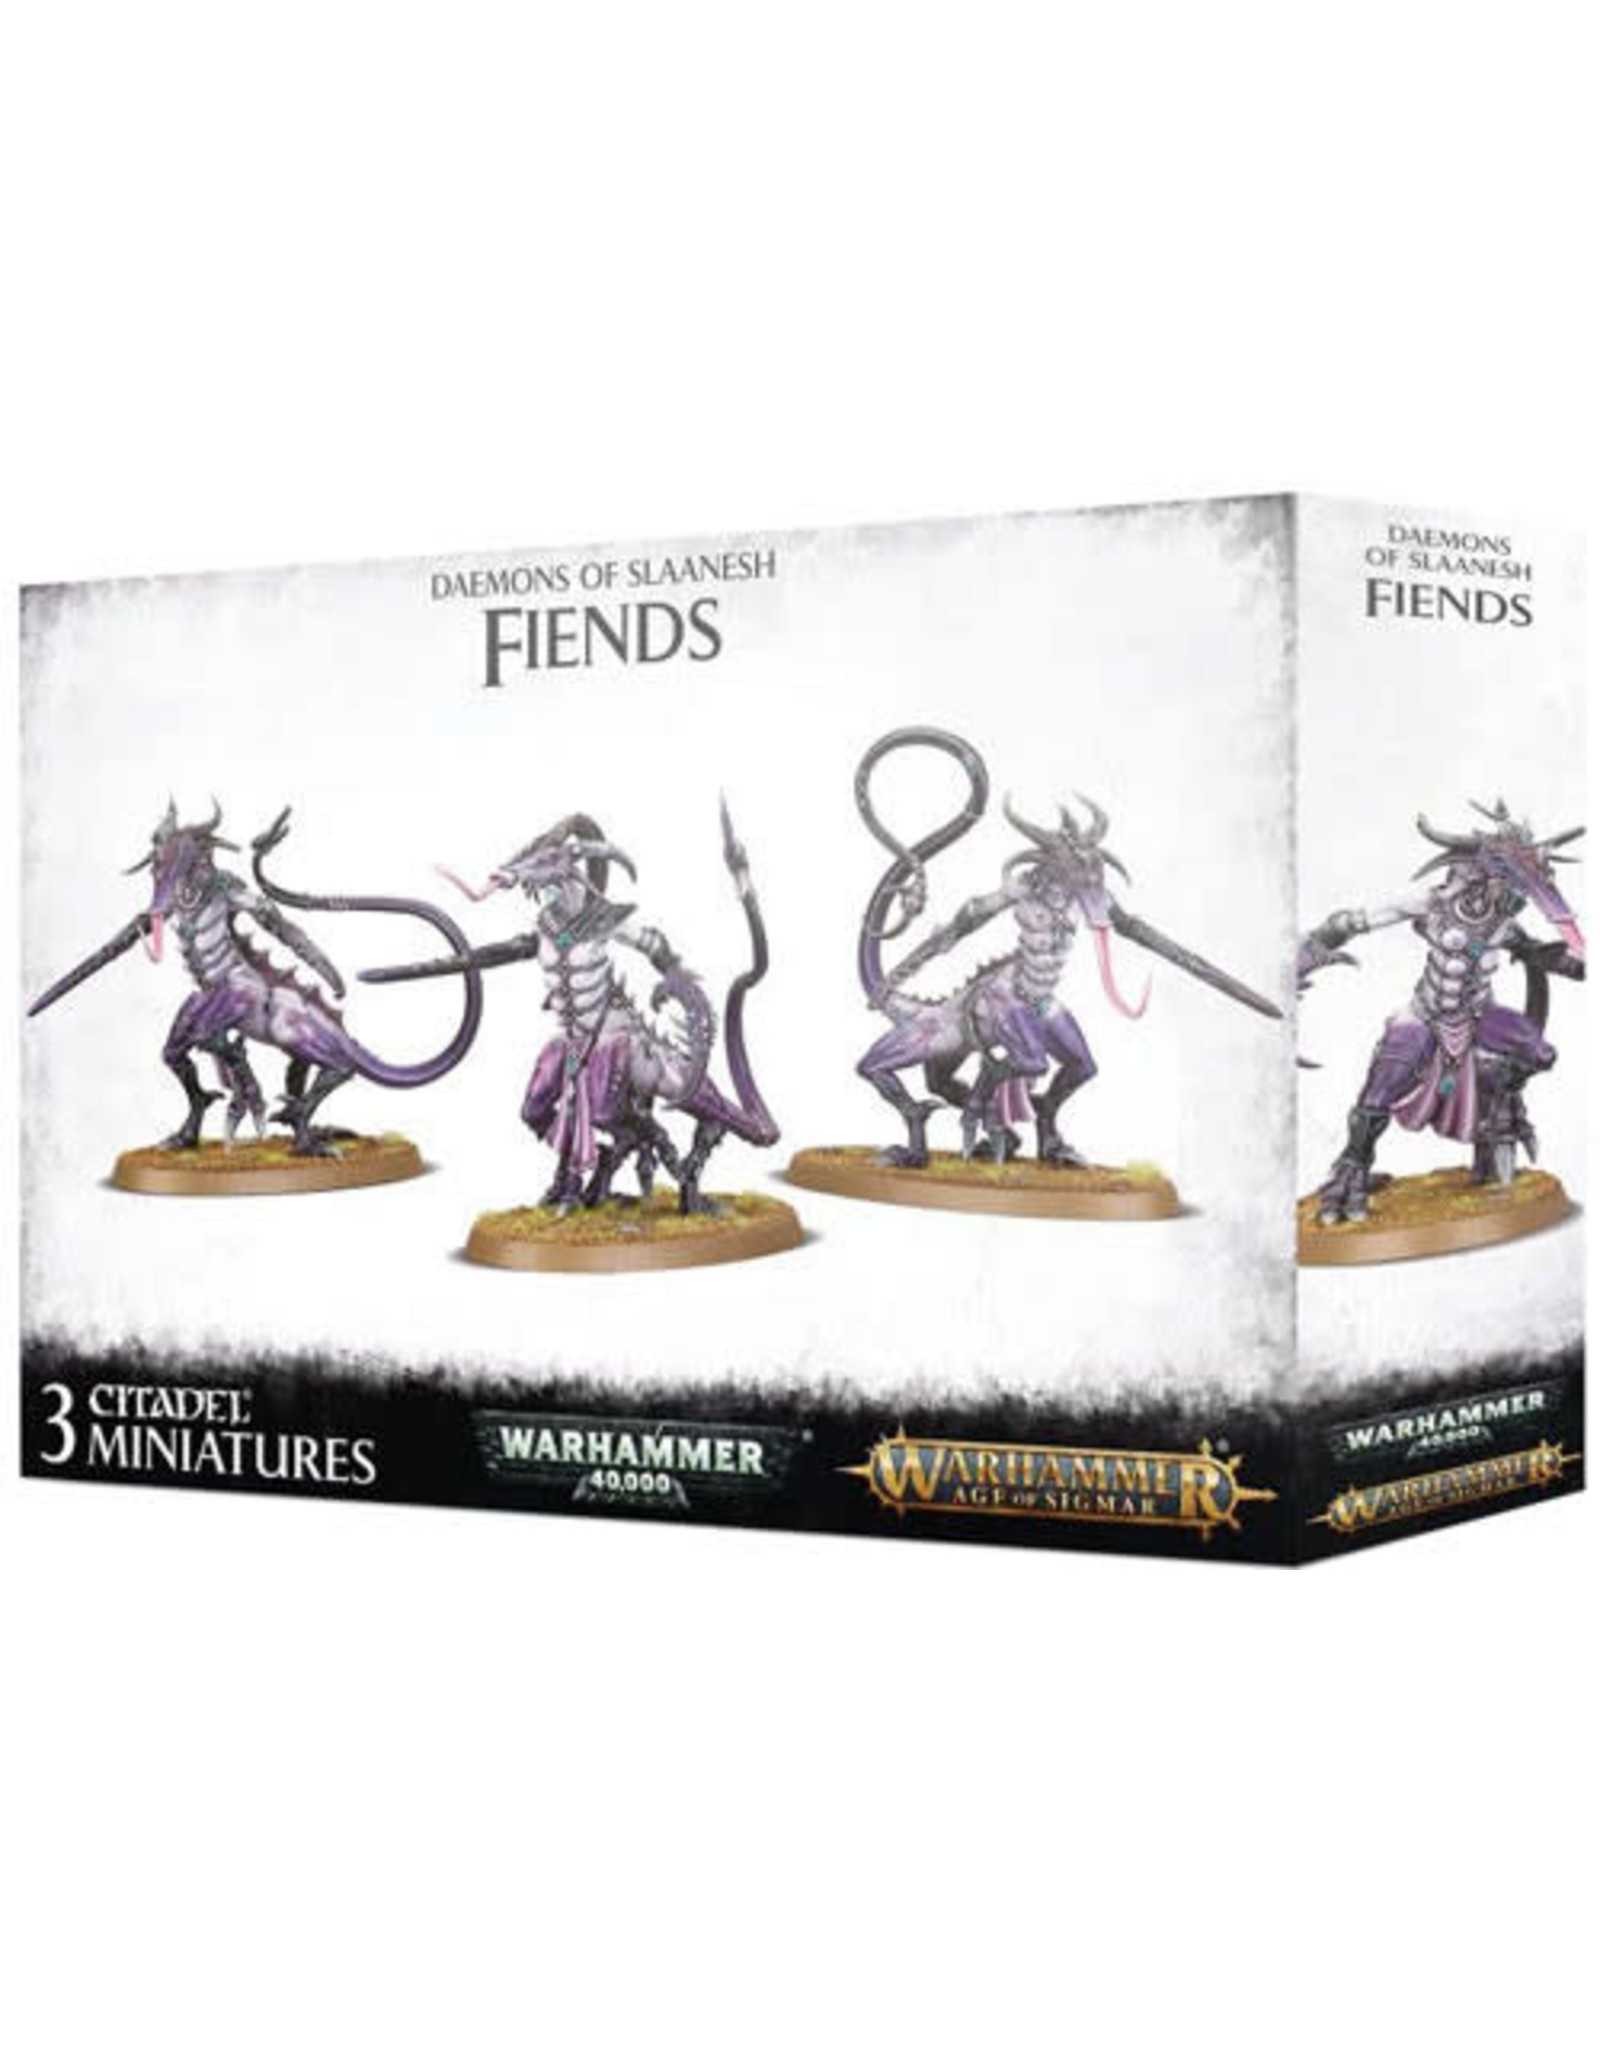 Daemons of Slaanesh FIends (AOS)